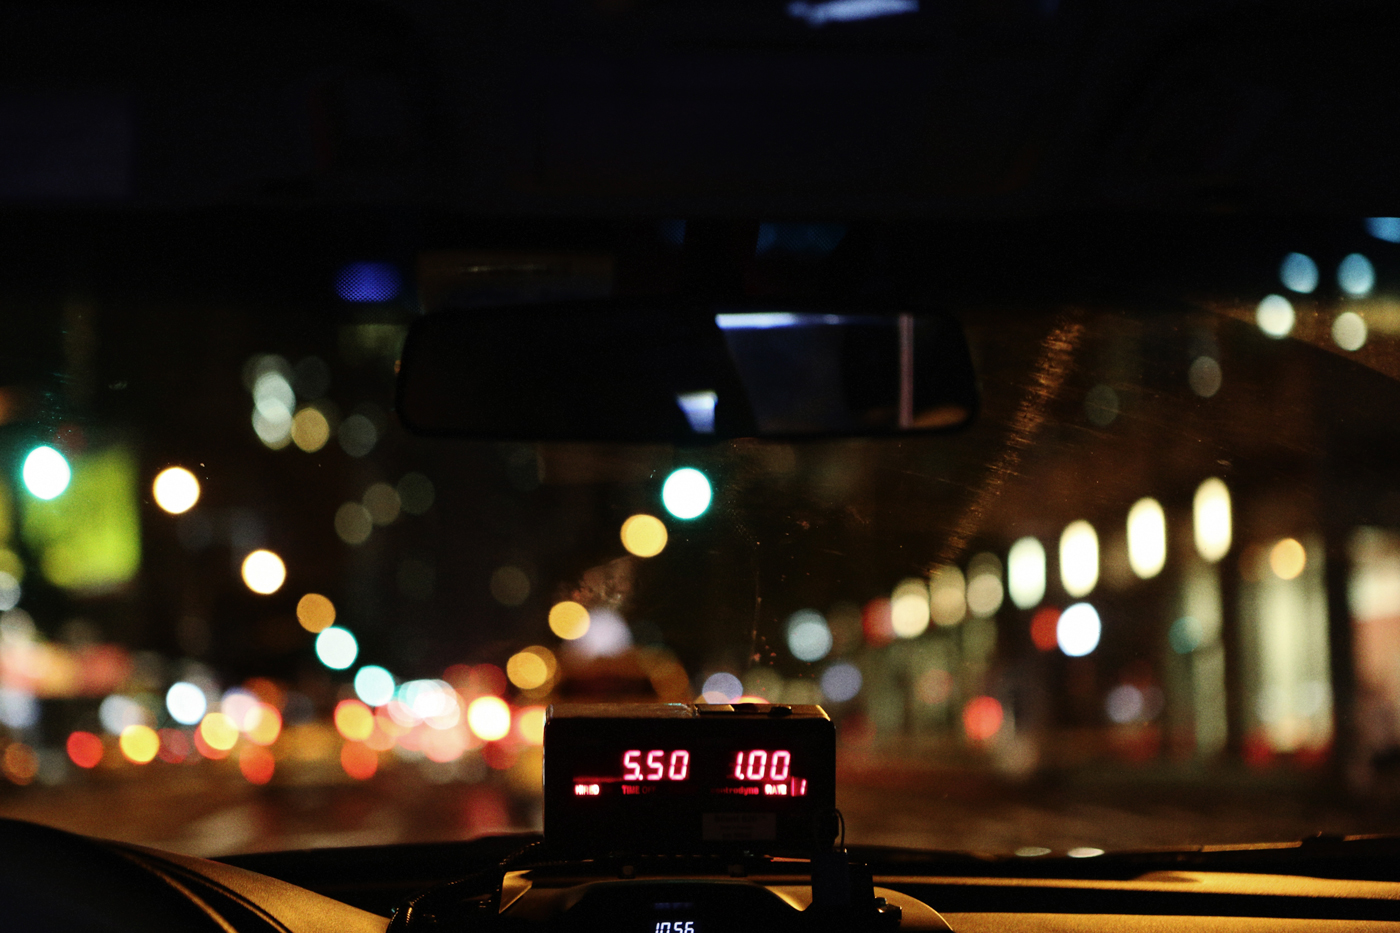 A taxi meter on a dashboard